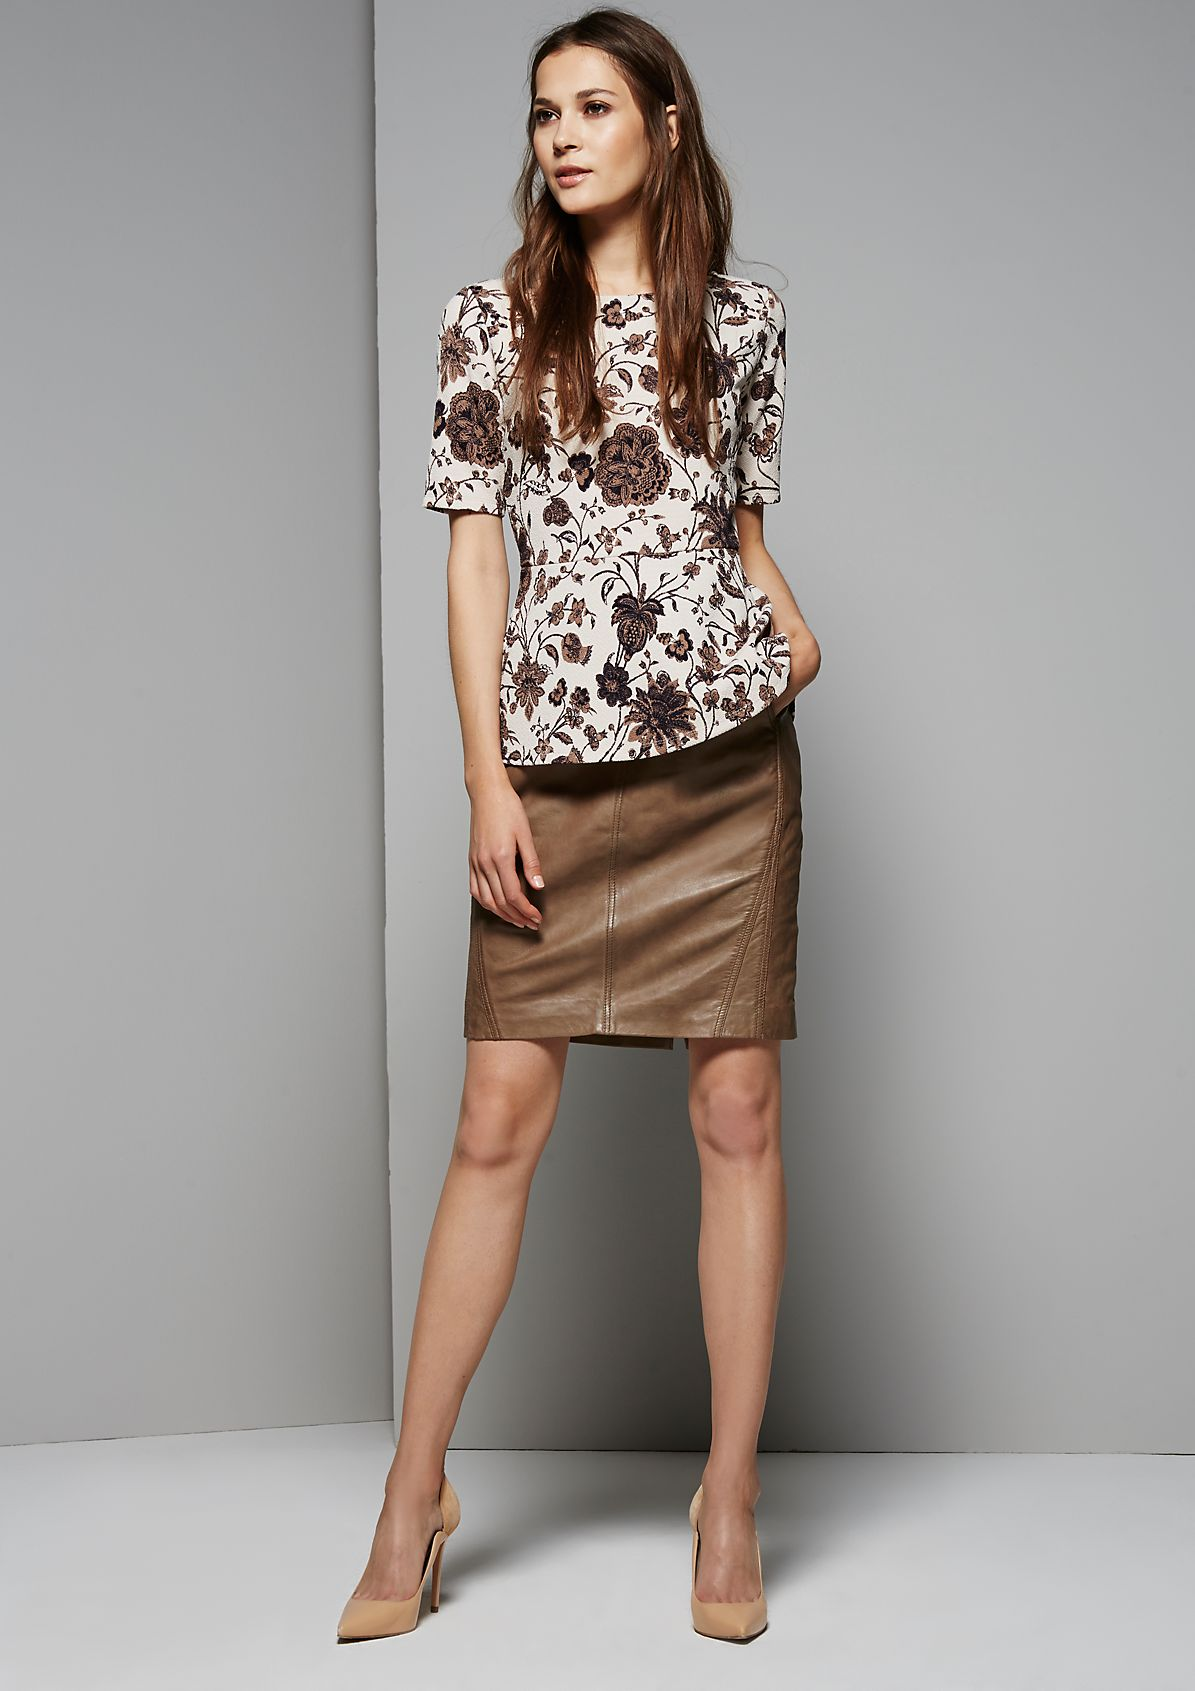 Extravagant short sleeve top with an elaborate, all-over pattern from s.Oliver